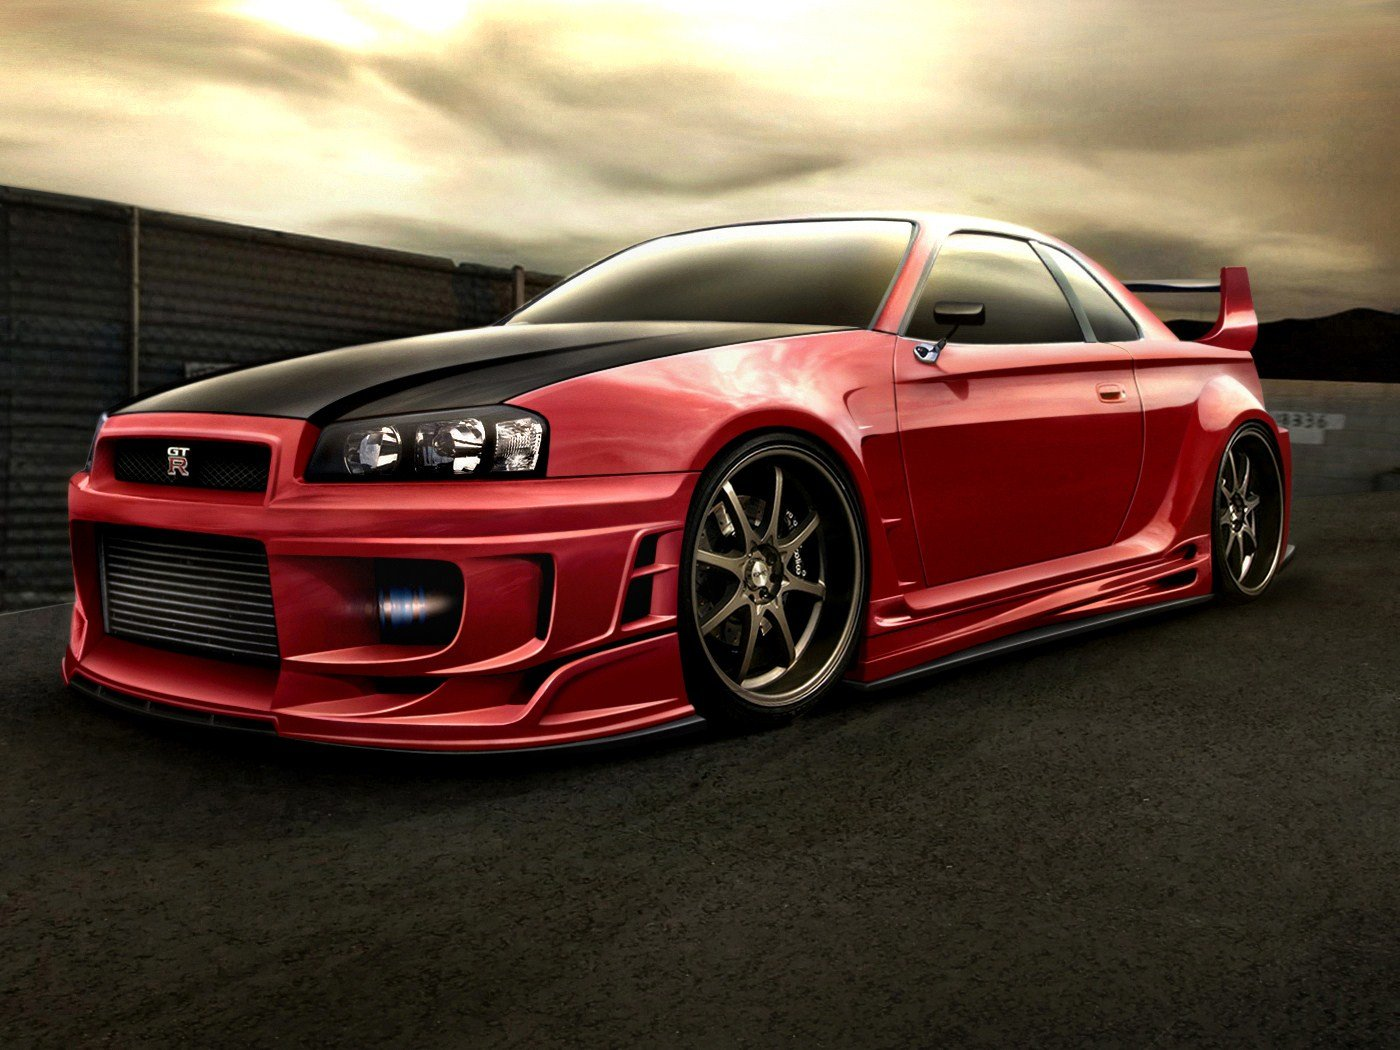 Latest 2014 Nissan Skyline Gtr Car Review Car Wallpaper Free Download